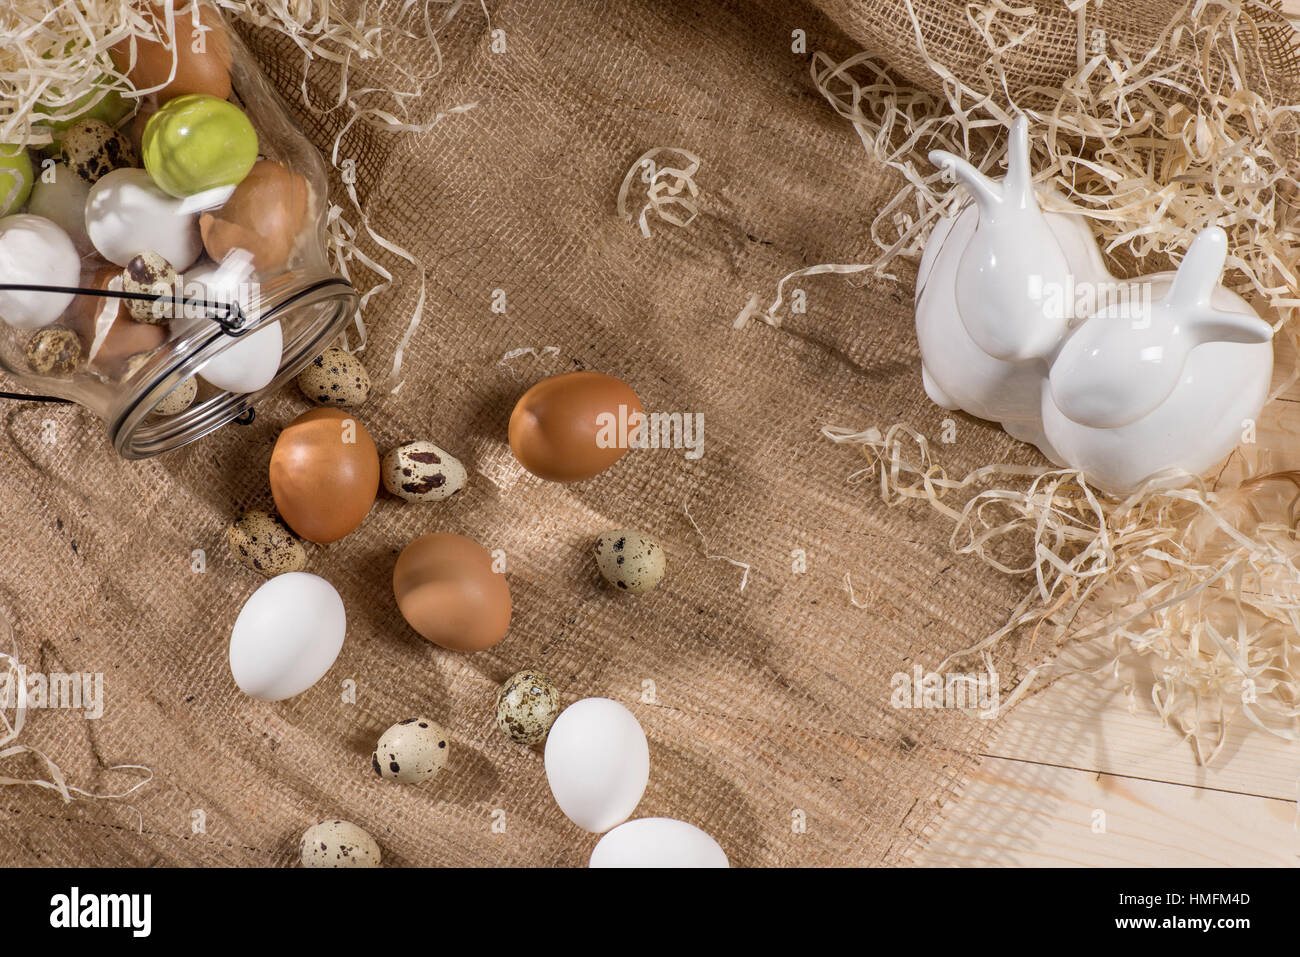 Quail and chicken eggs - Stock Image